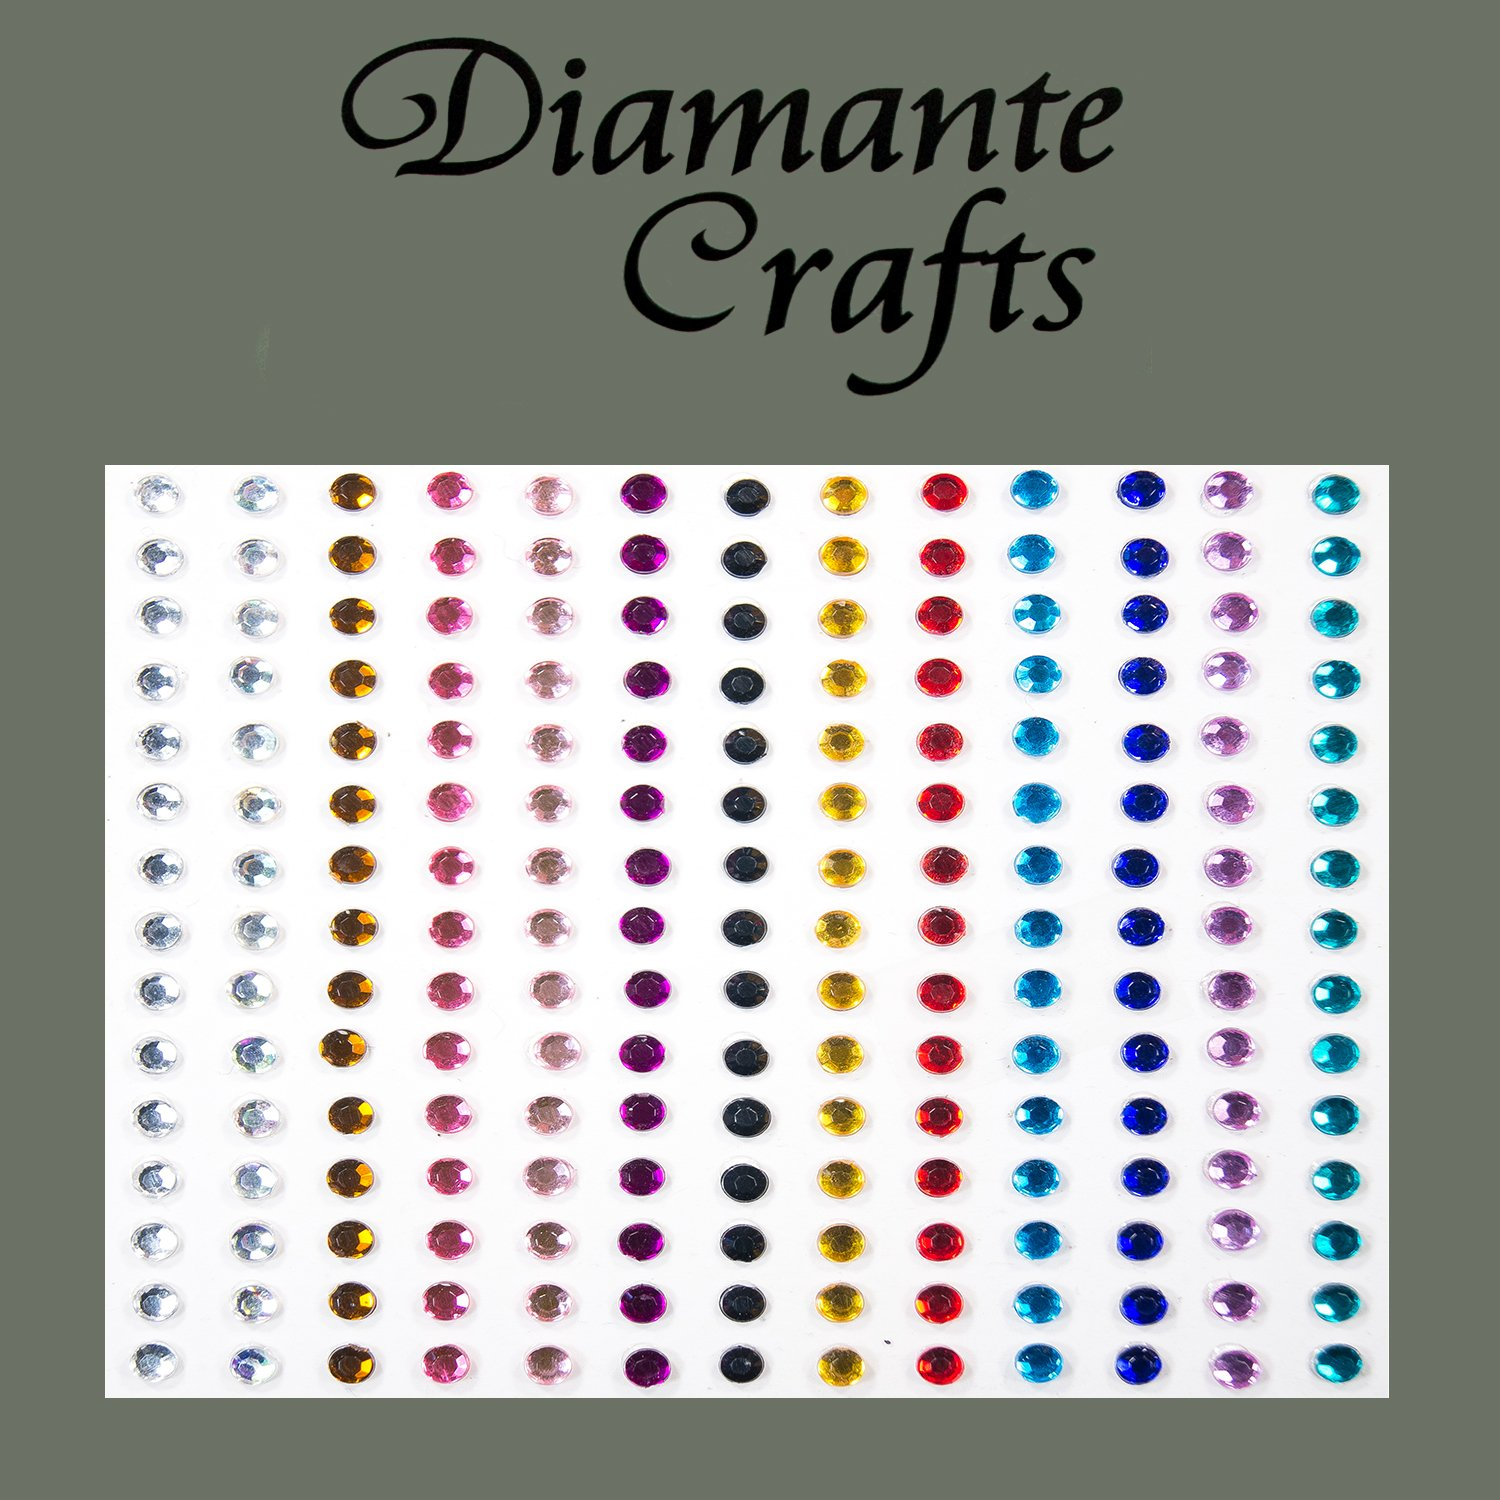 195 x 3mm Mixed Colour Diamante Self Adhesive Rhinestone Body Vajazzle Gems - created exclusively for Diamante Crafts